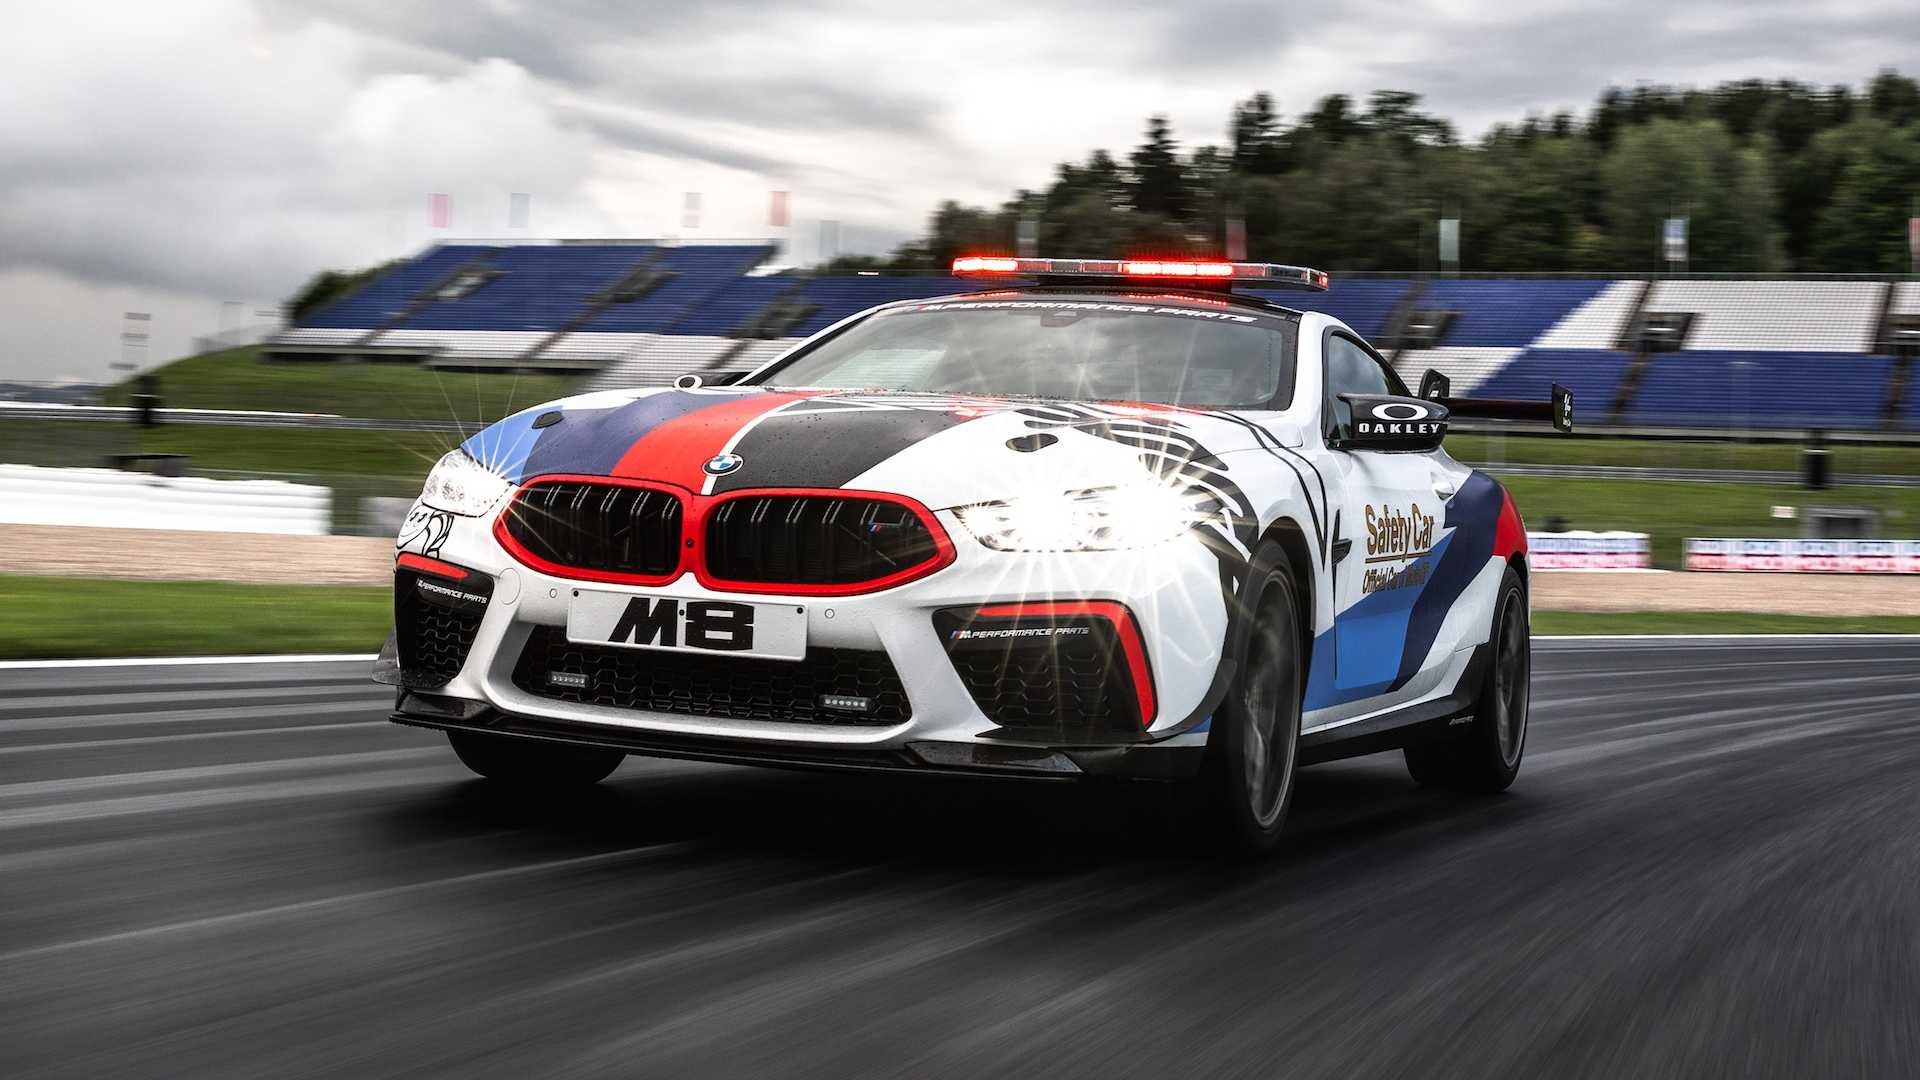 49569c31-bmw-m8-motogp-safety-car-7